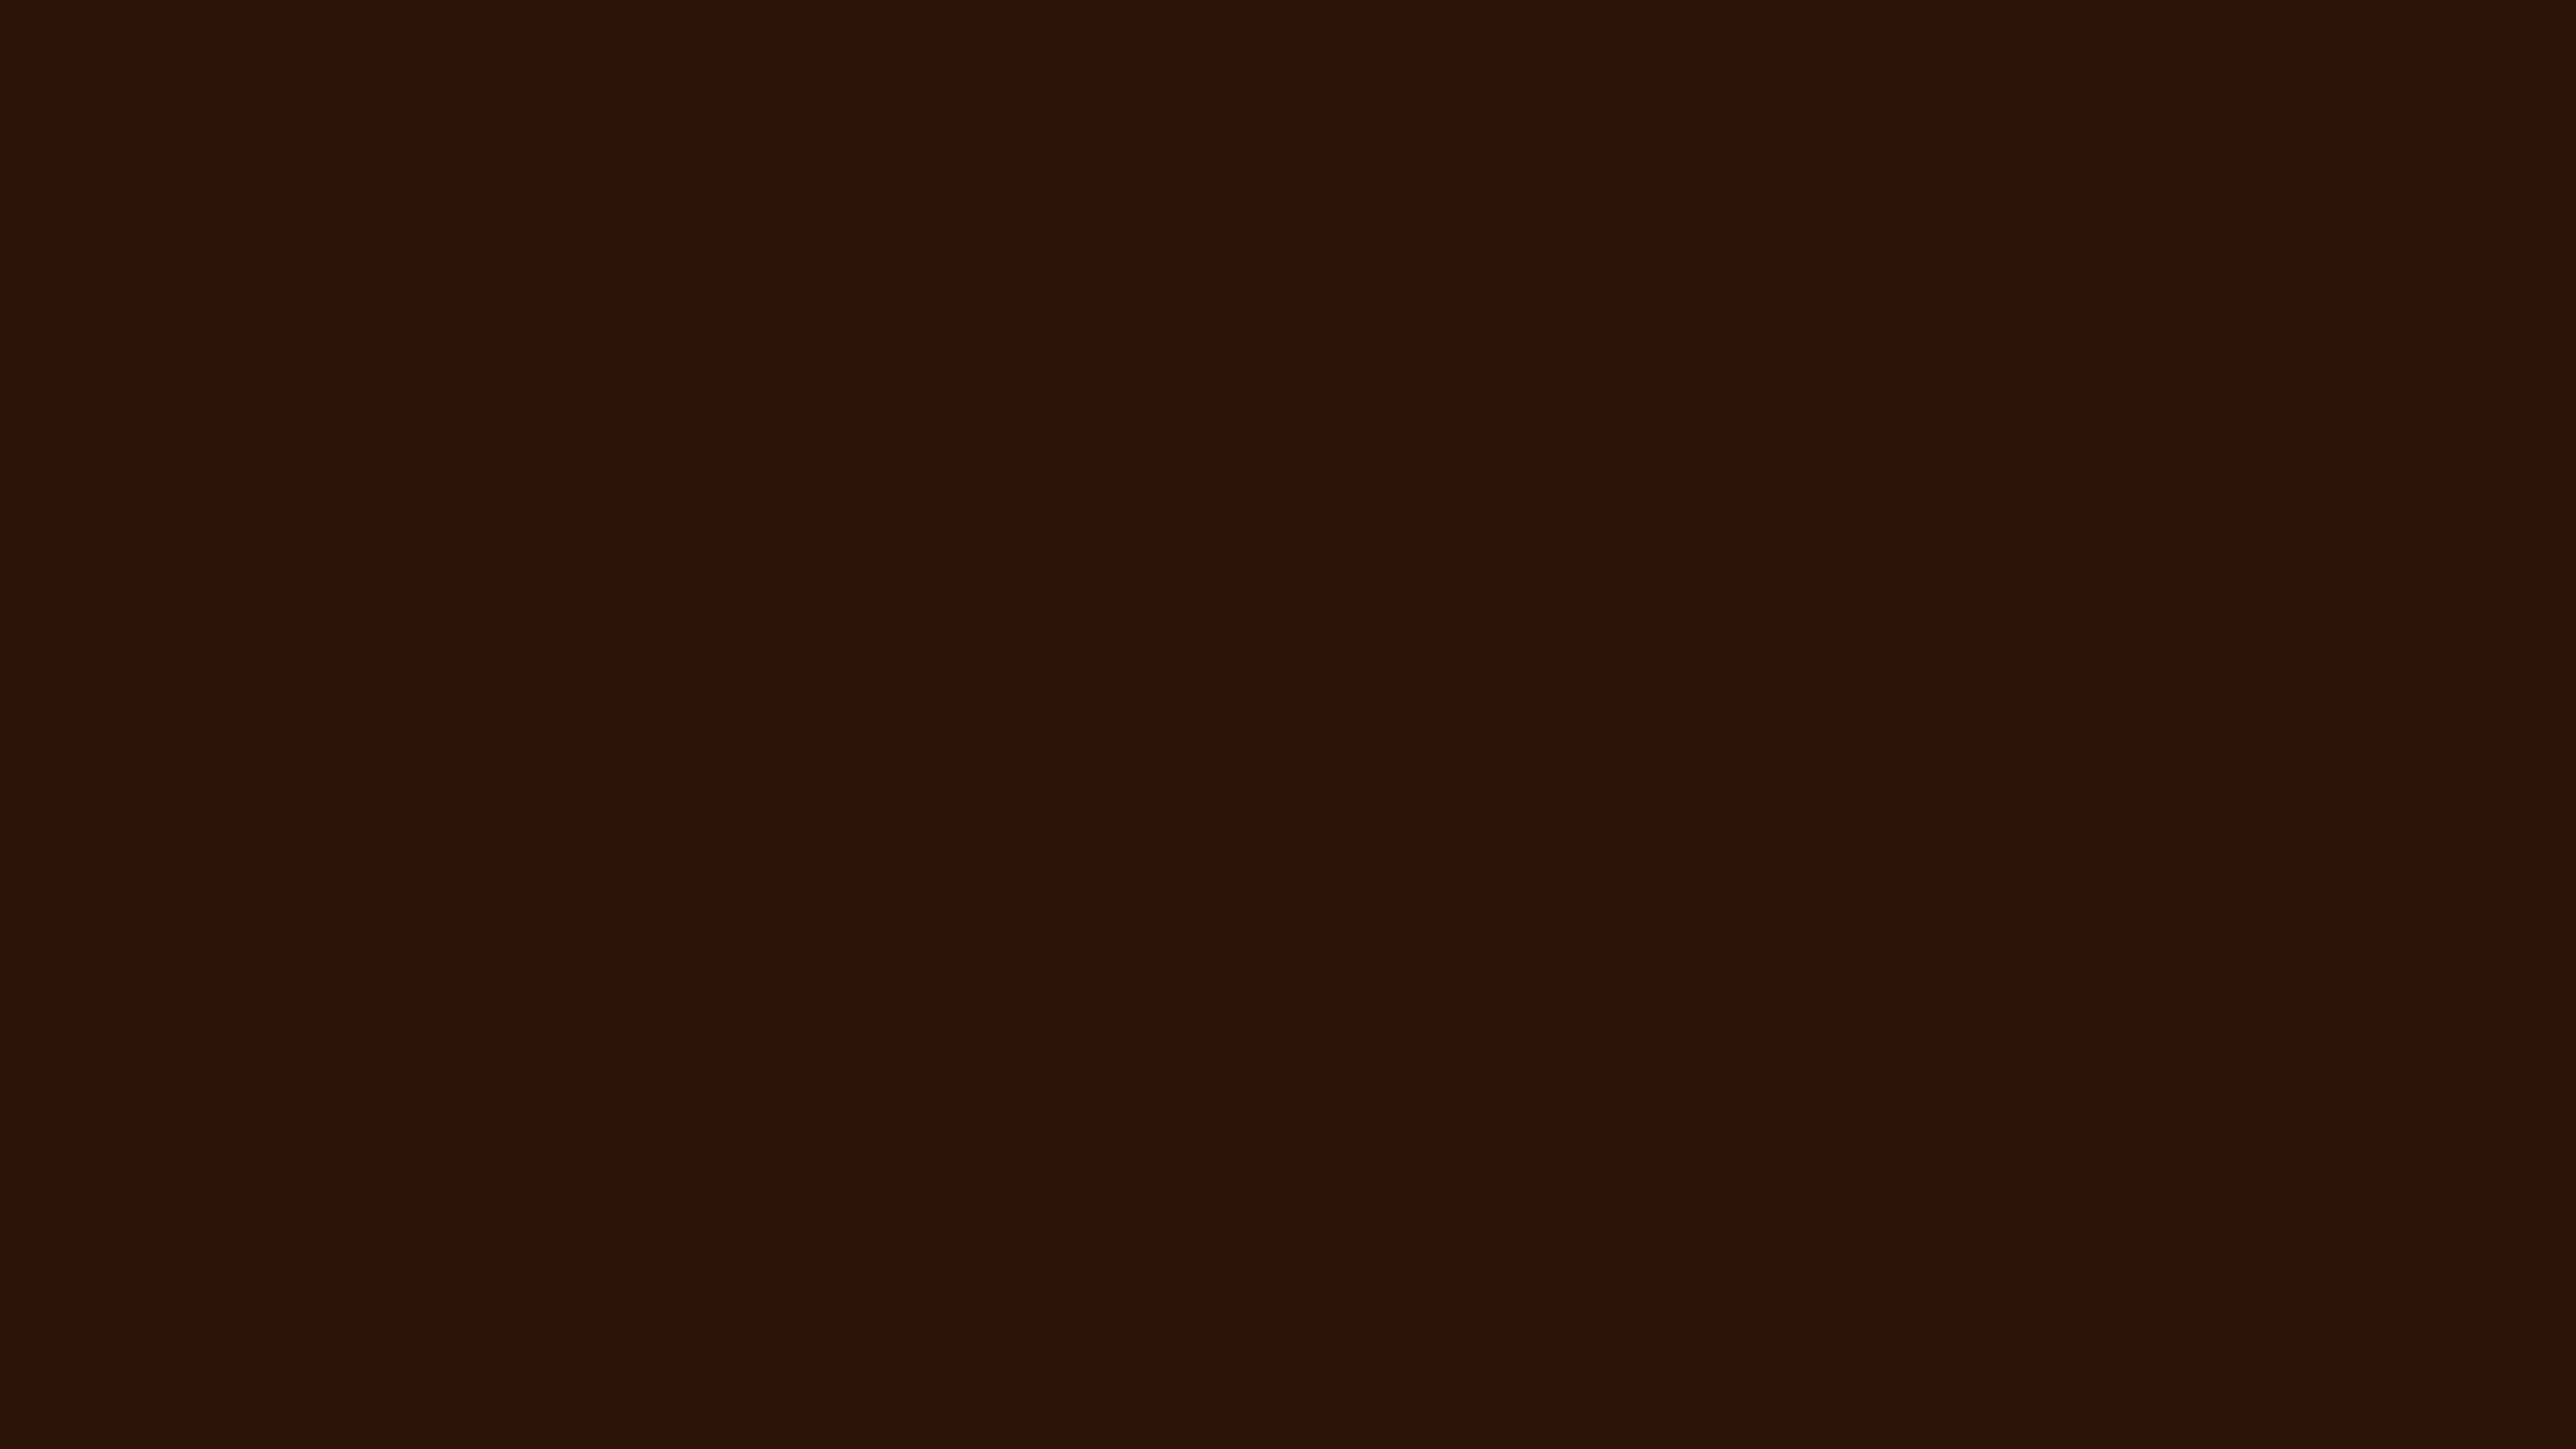 3840x2160 Zinnwaldite Brown Solid Color Background